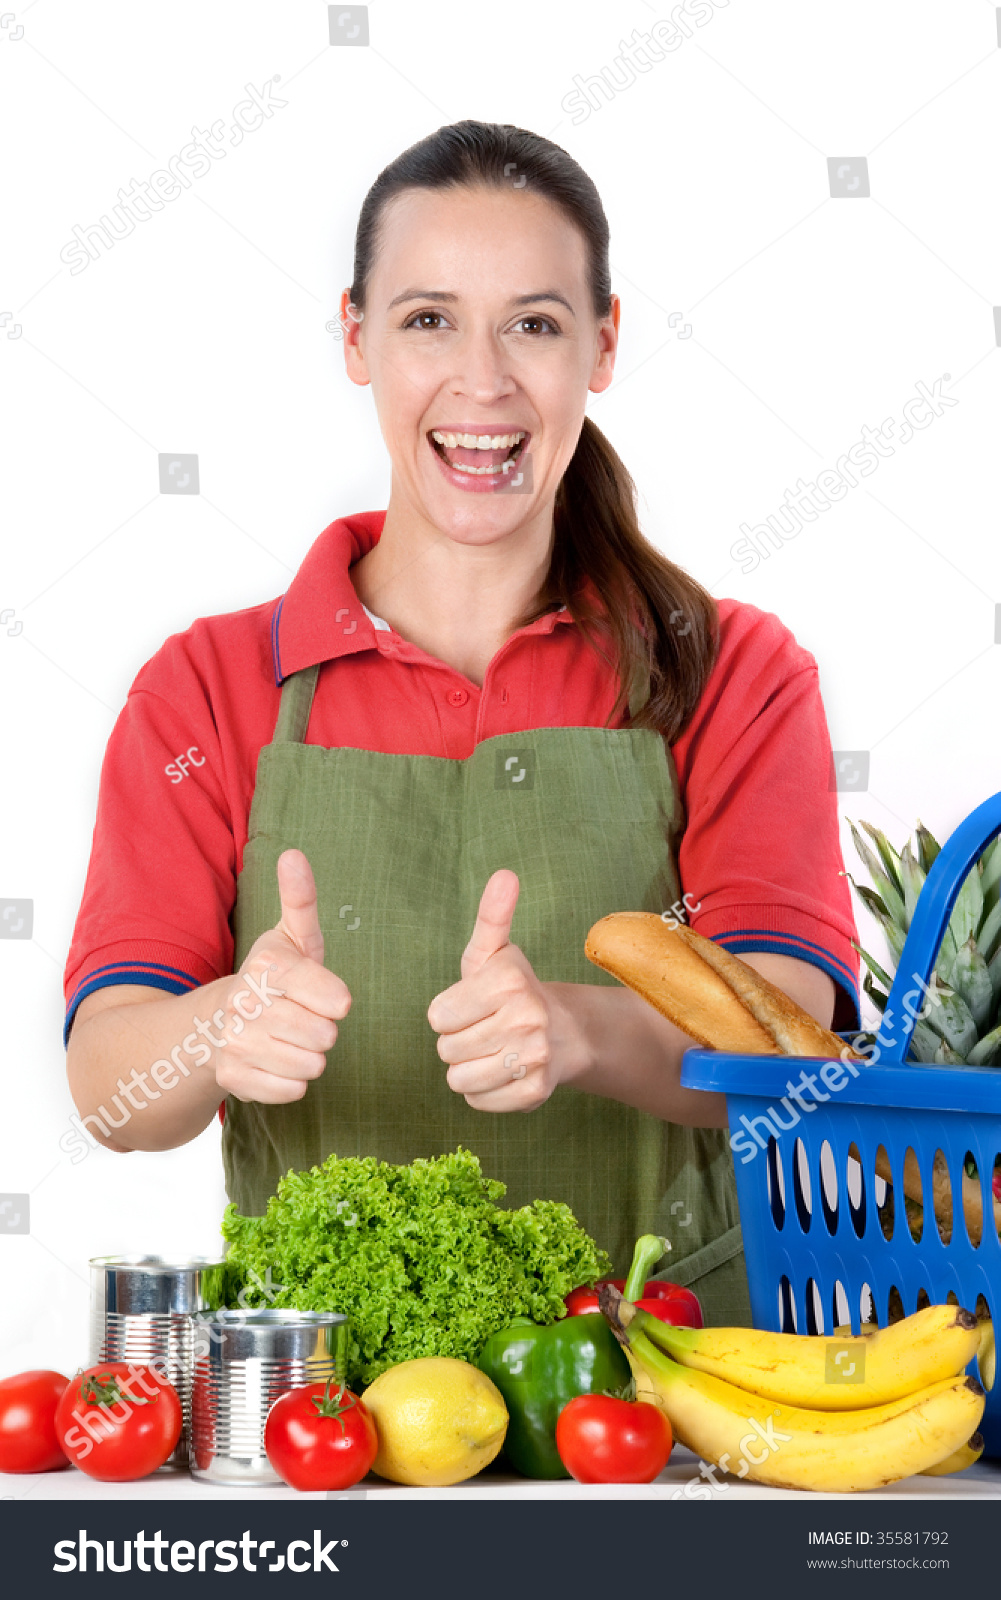 a young friendly grocery store assistant thumbs up stock save to a lightbox